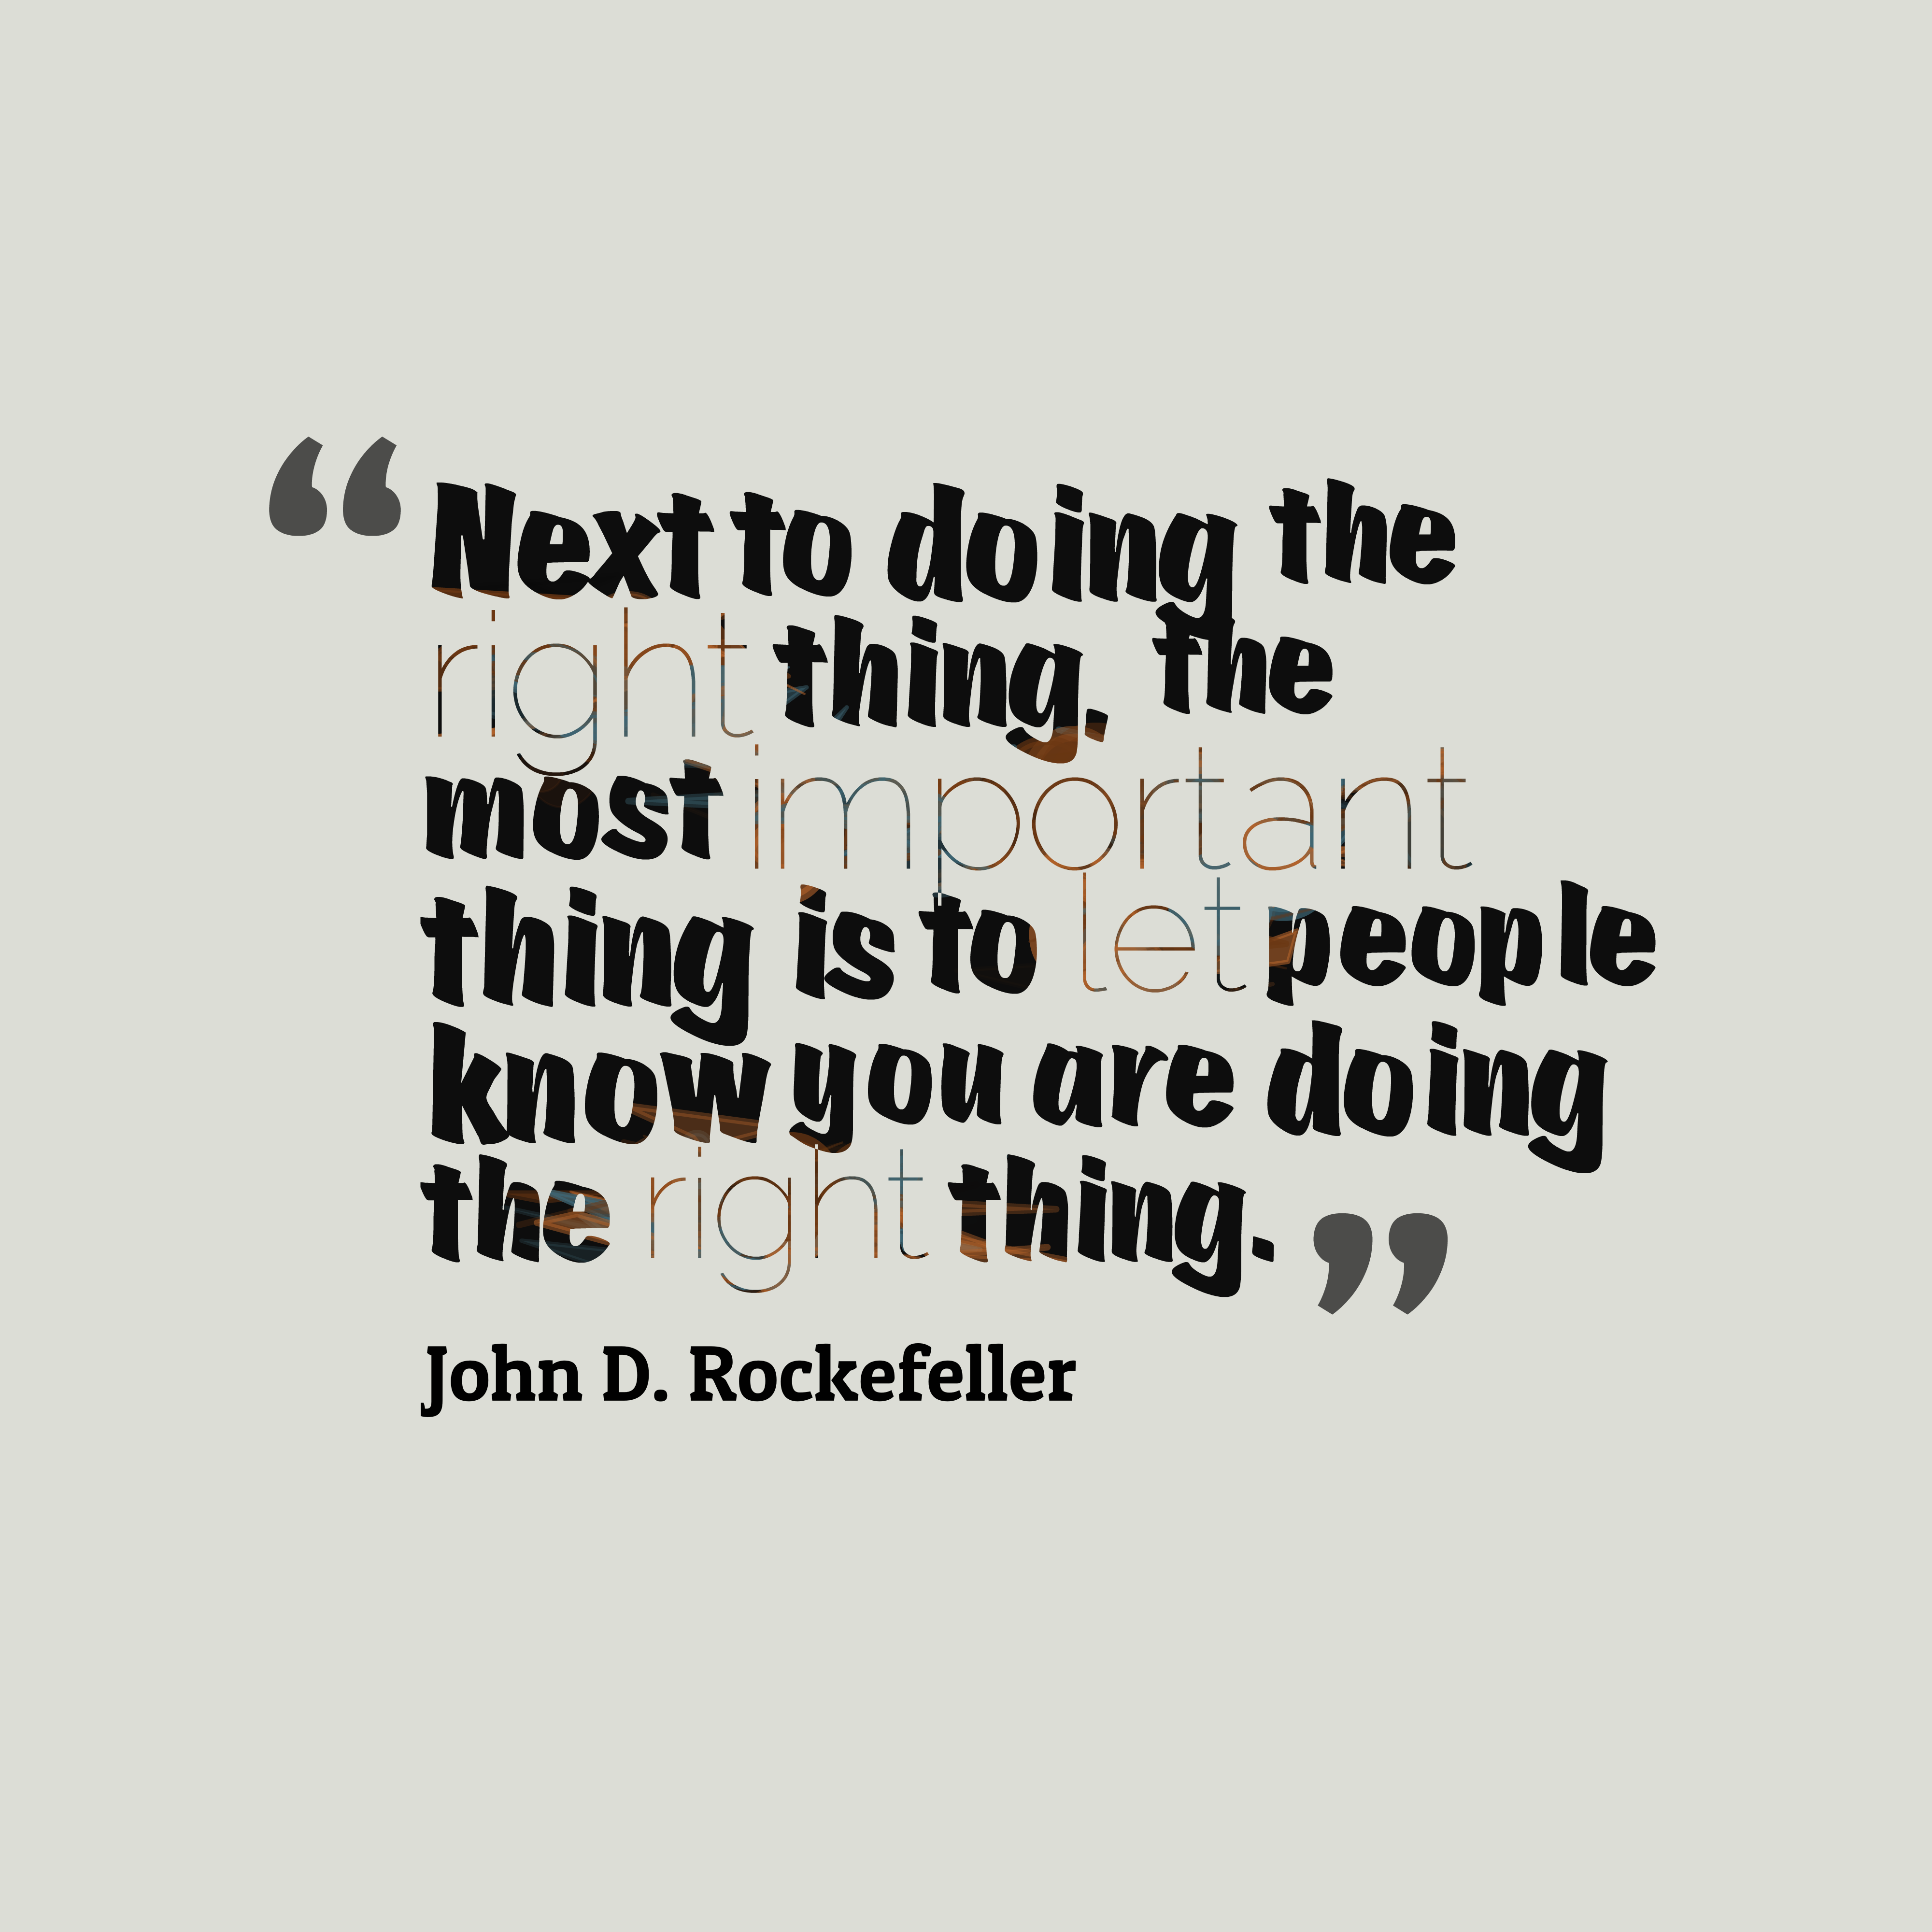 John D Rockefeller Quote About Duty